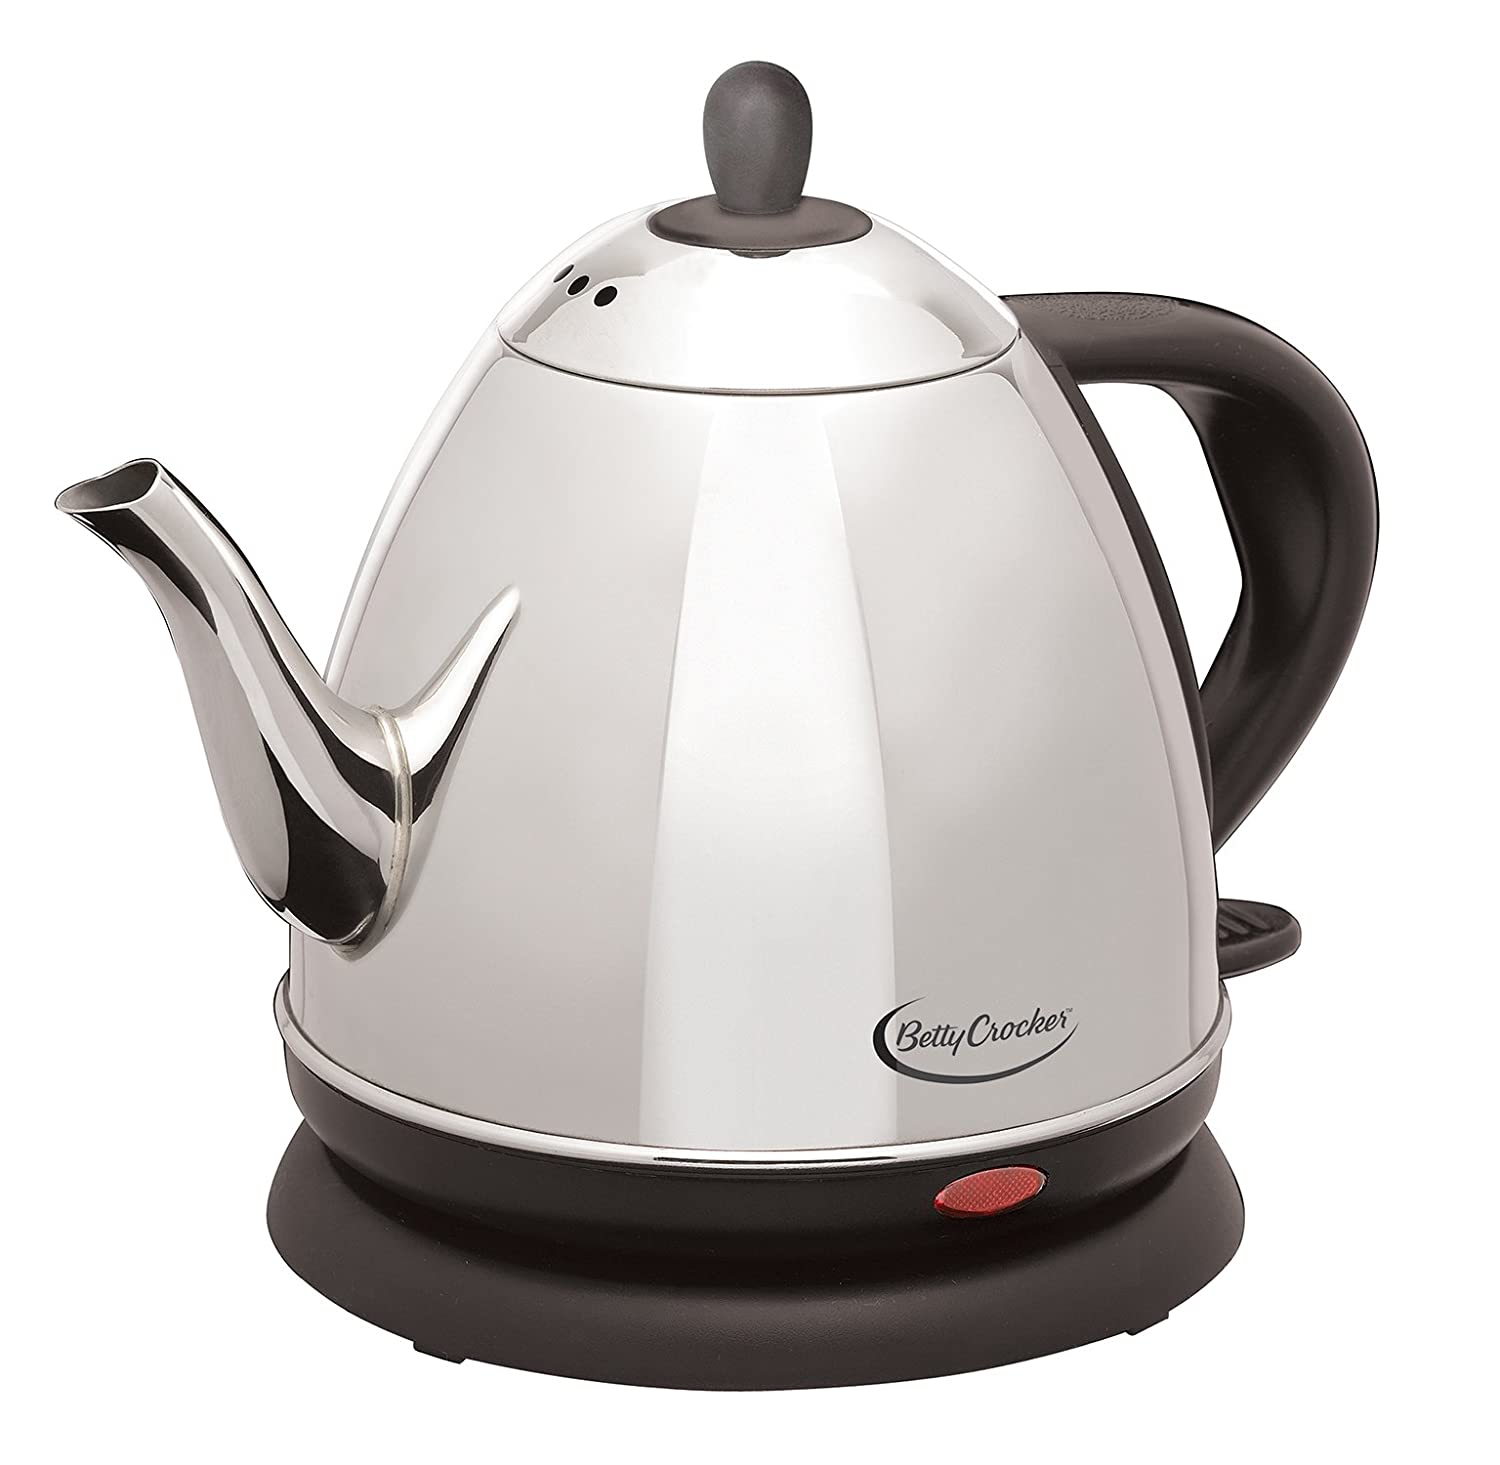 Kettles Hot Water Dispensers Online Shopping For Clothing Shoes